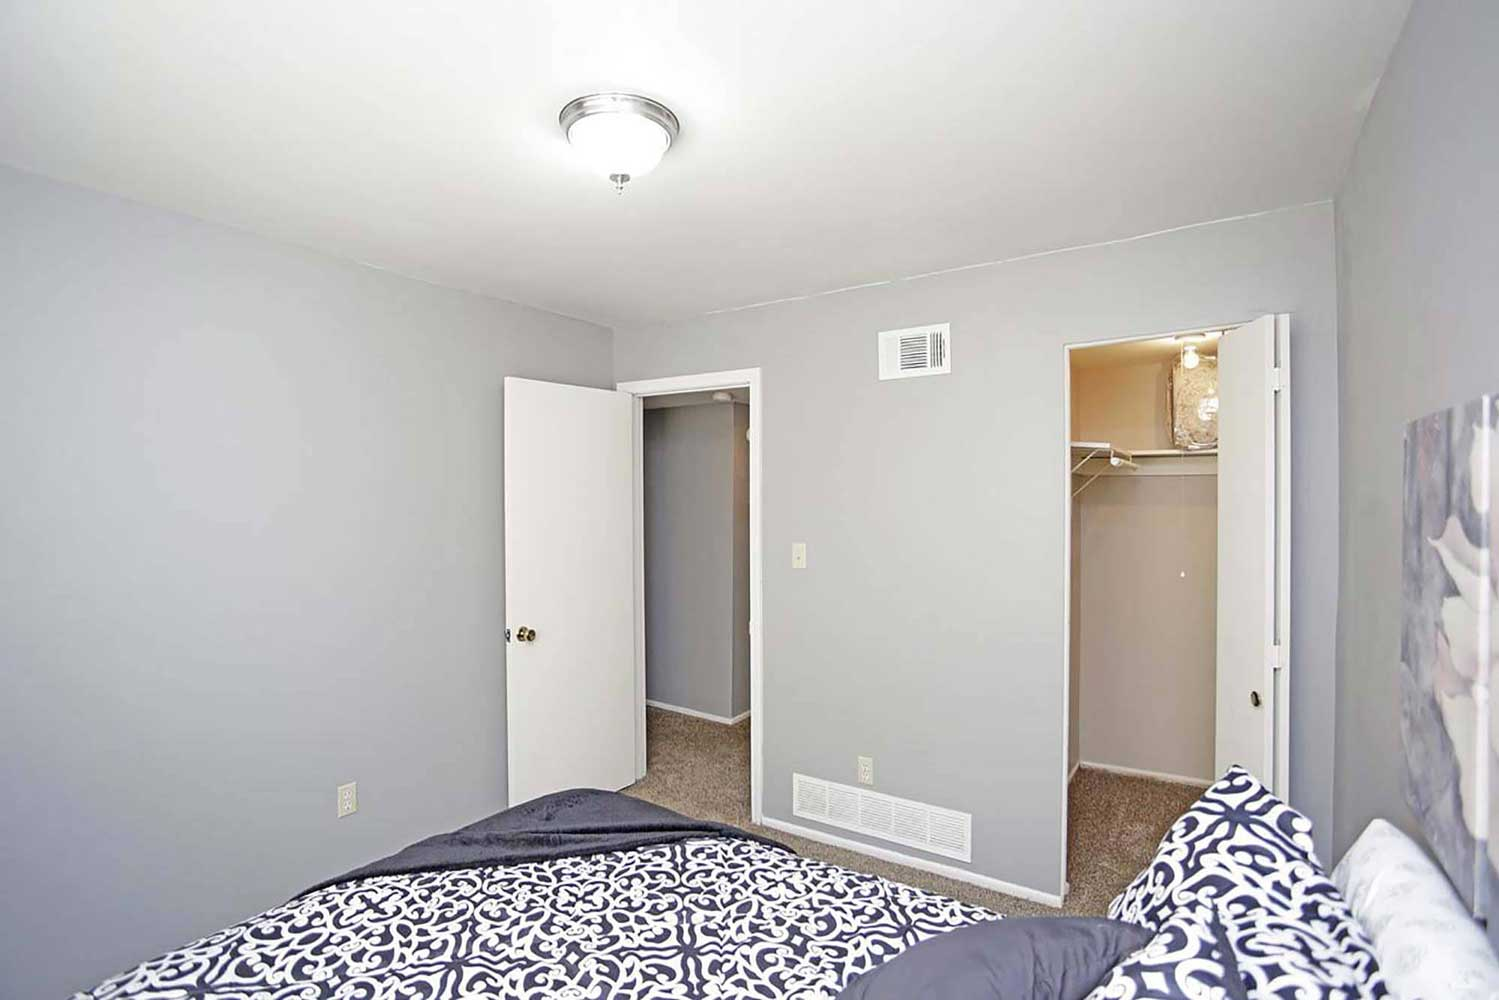 Walk-In Closets at Parkville Place Apartments in Parkville, MO